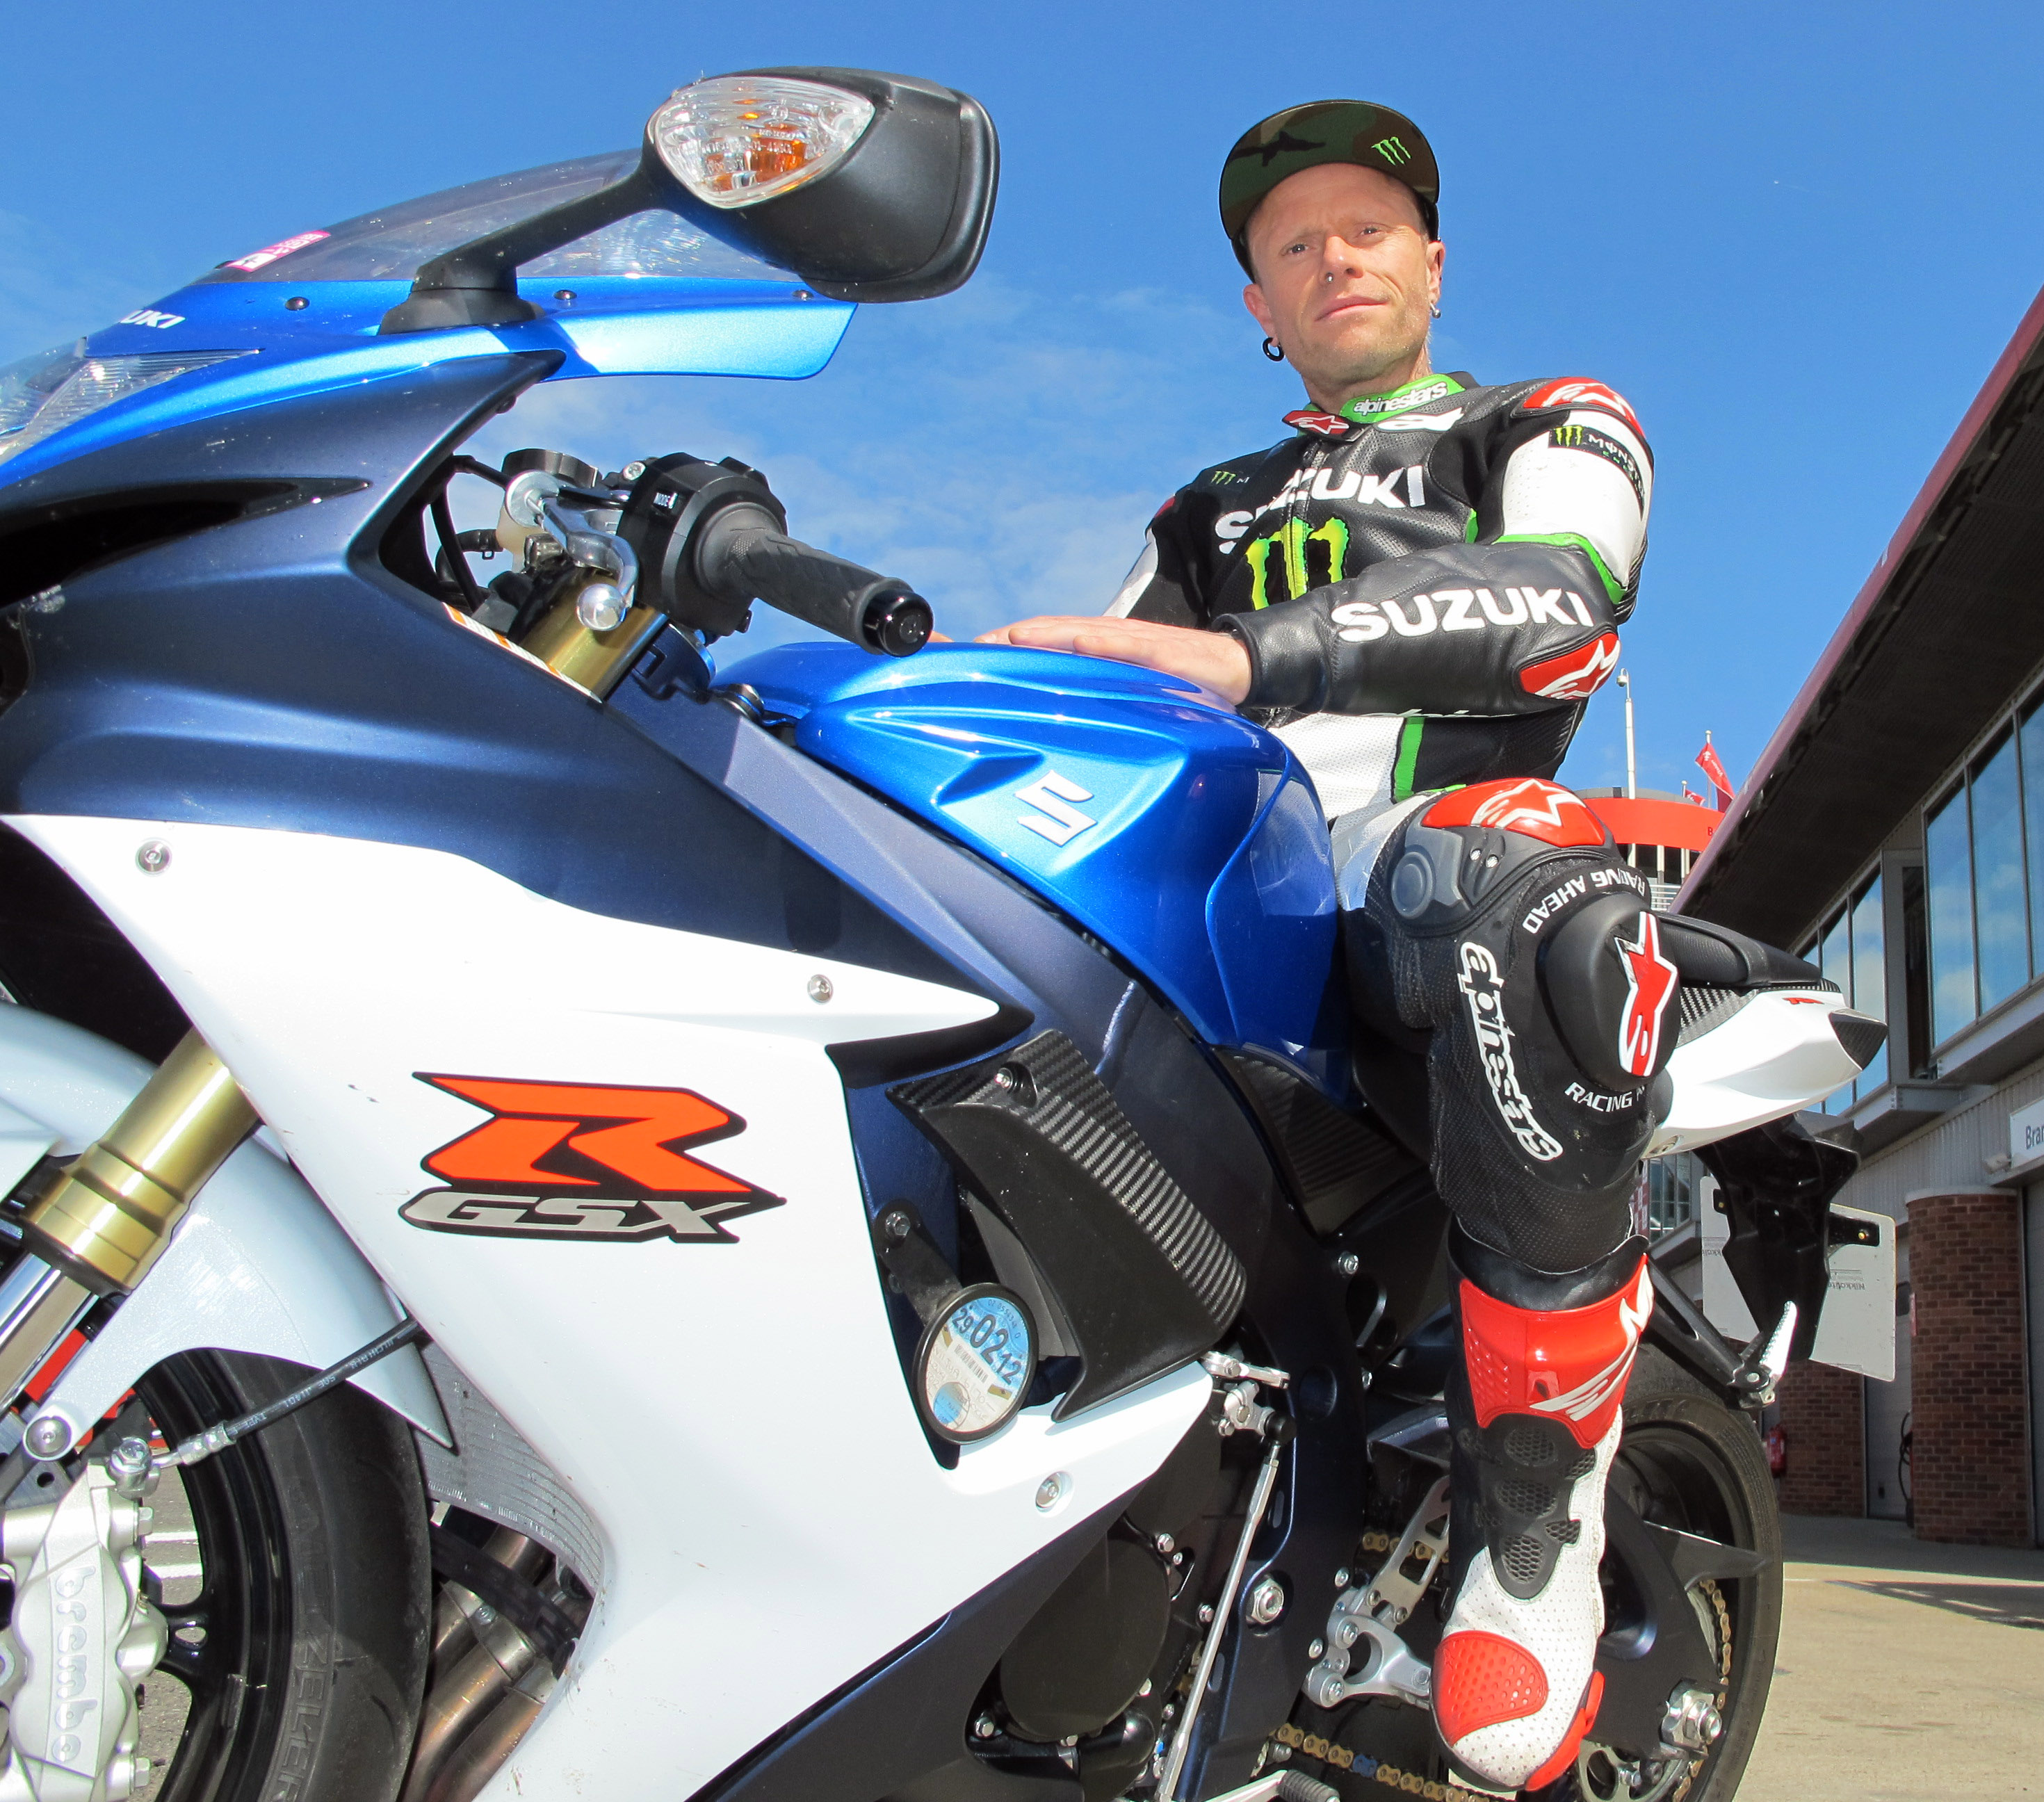 Prodigy's Keith Flint takes his GSX-R750 on track